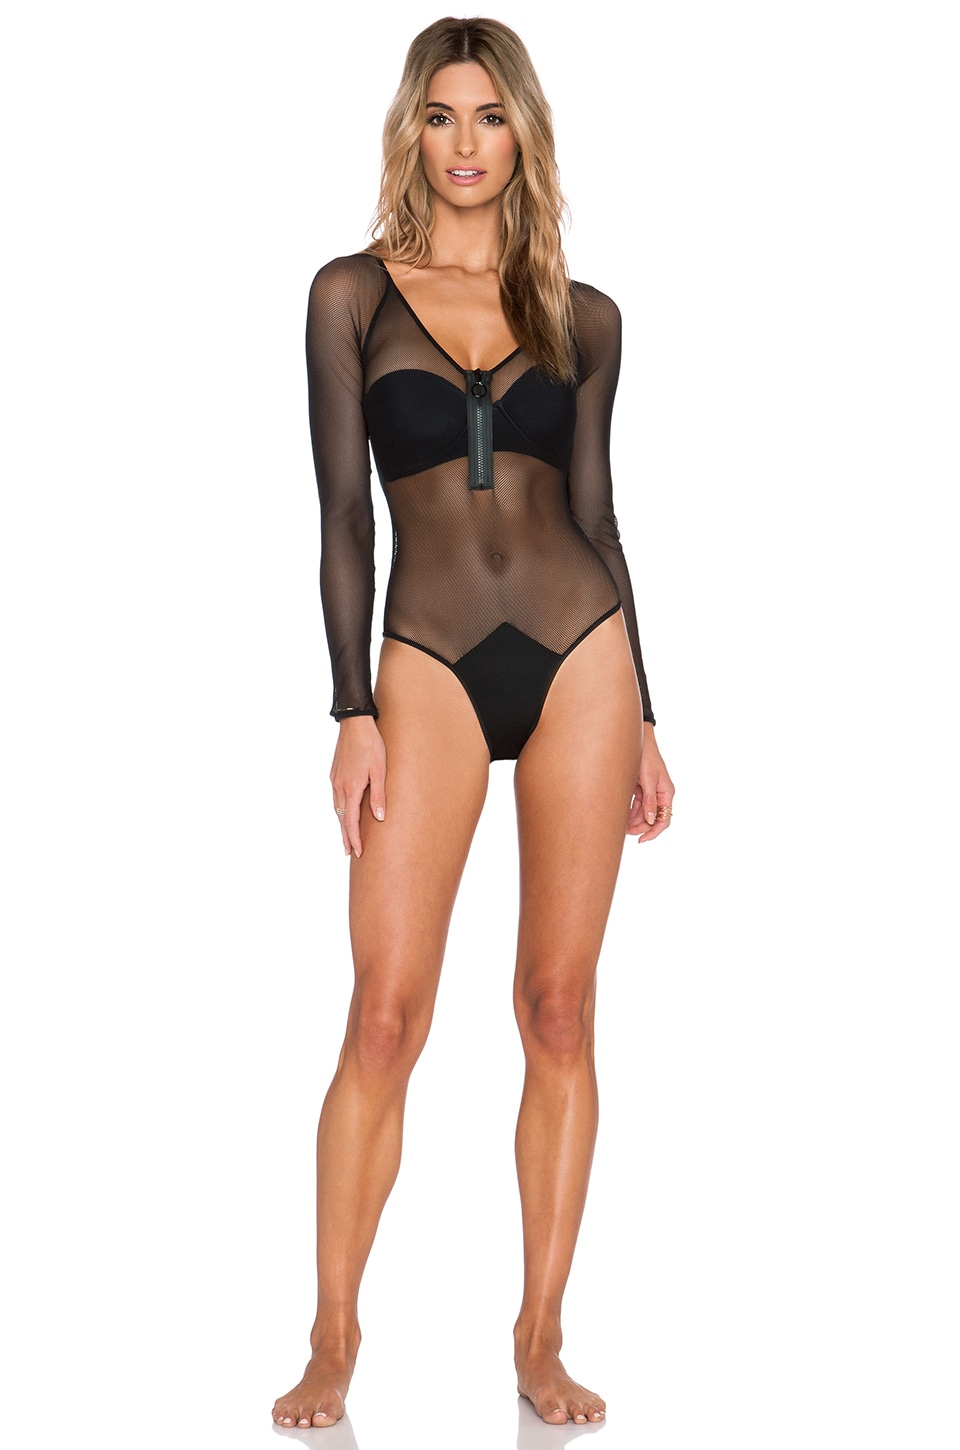 The Solo Swimsuit